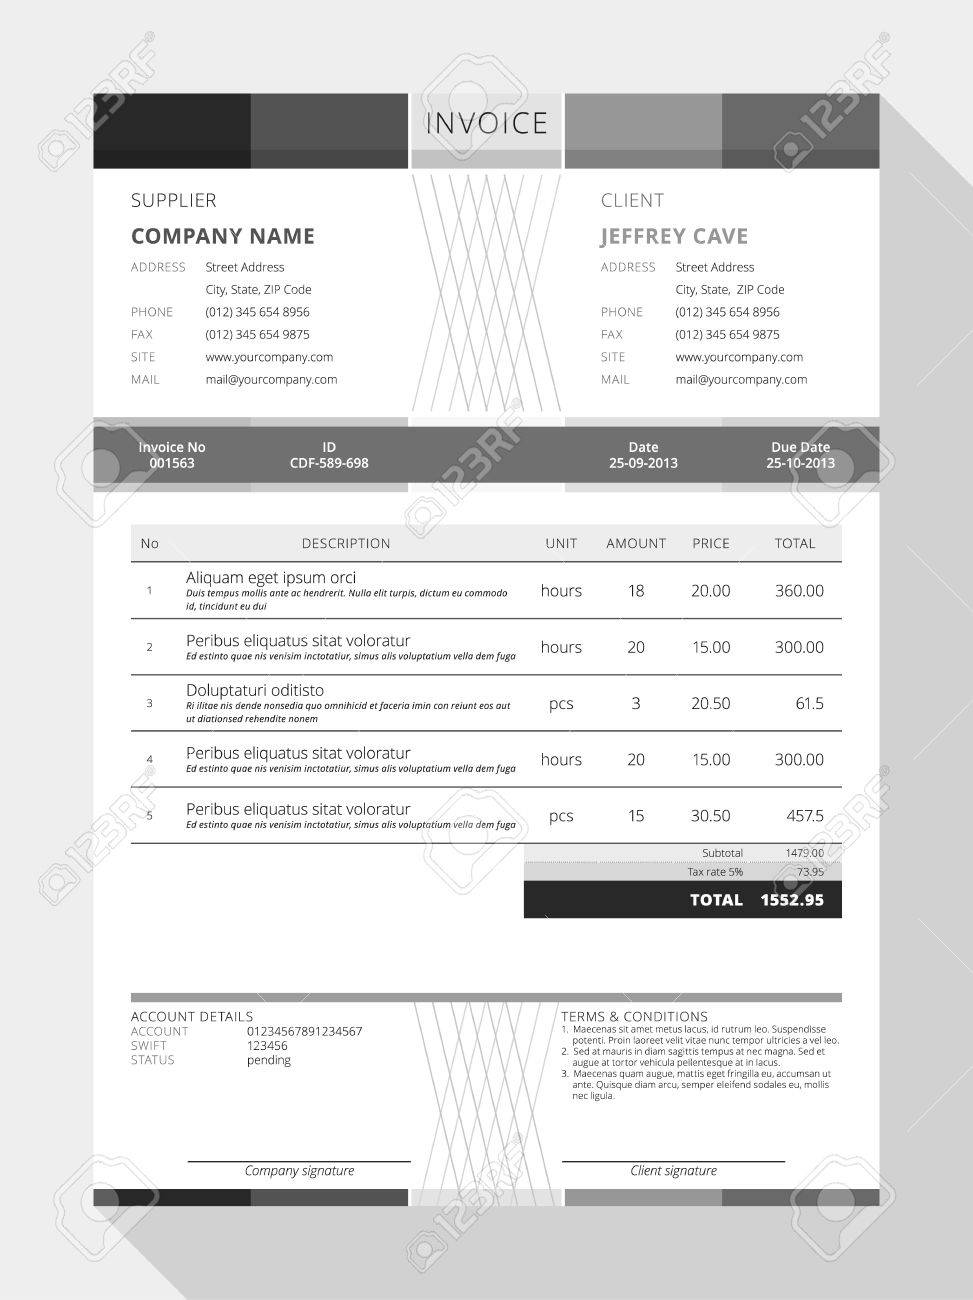 Pigbrotherus  Gorgeous Design An Invoice  Professional Graphic Design Invoice  With Fascinating Vector Customizable Invoice Form Template Design Vector   Design An Invoice With Amazing Auto Repair Receipt Also Create Receipt In Addition Lost Receipt Form And Receipt Machine As Well As Yellow Cab Receipt Additionally Evernote Receipts From Happytomco With Pigbrotherus  Fascinating Design An Invoice  Professional Graphic Design Invoice  With Amazing Vector Customizable Invoice Form Template Design Vector   Design An Invoice And Gorgeous Auto Repair Receipt Also Create Receipt In Addition Lost Receipt Form From Happytomco